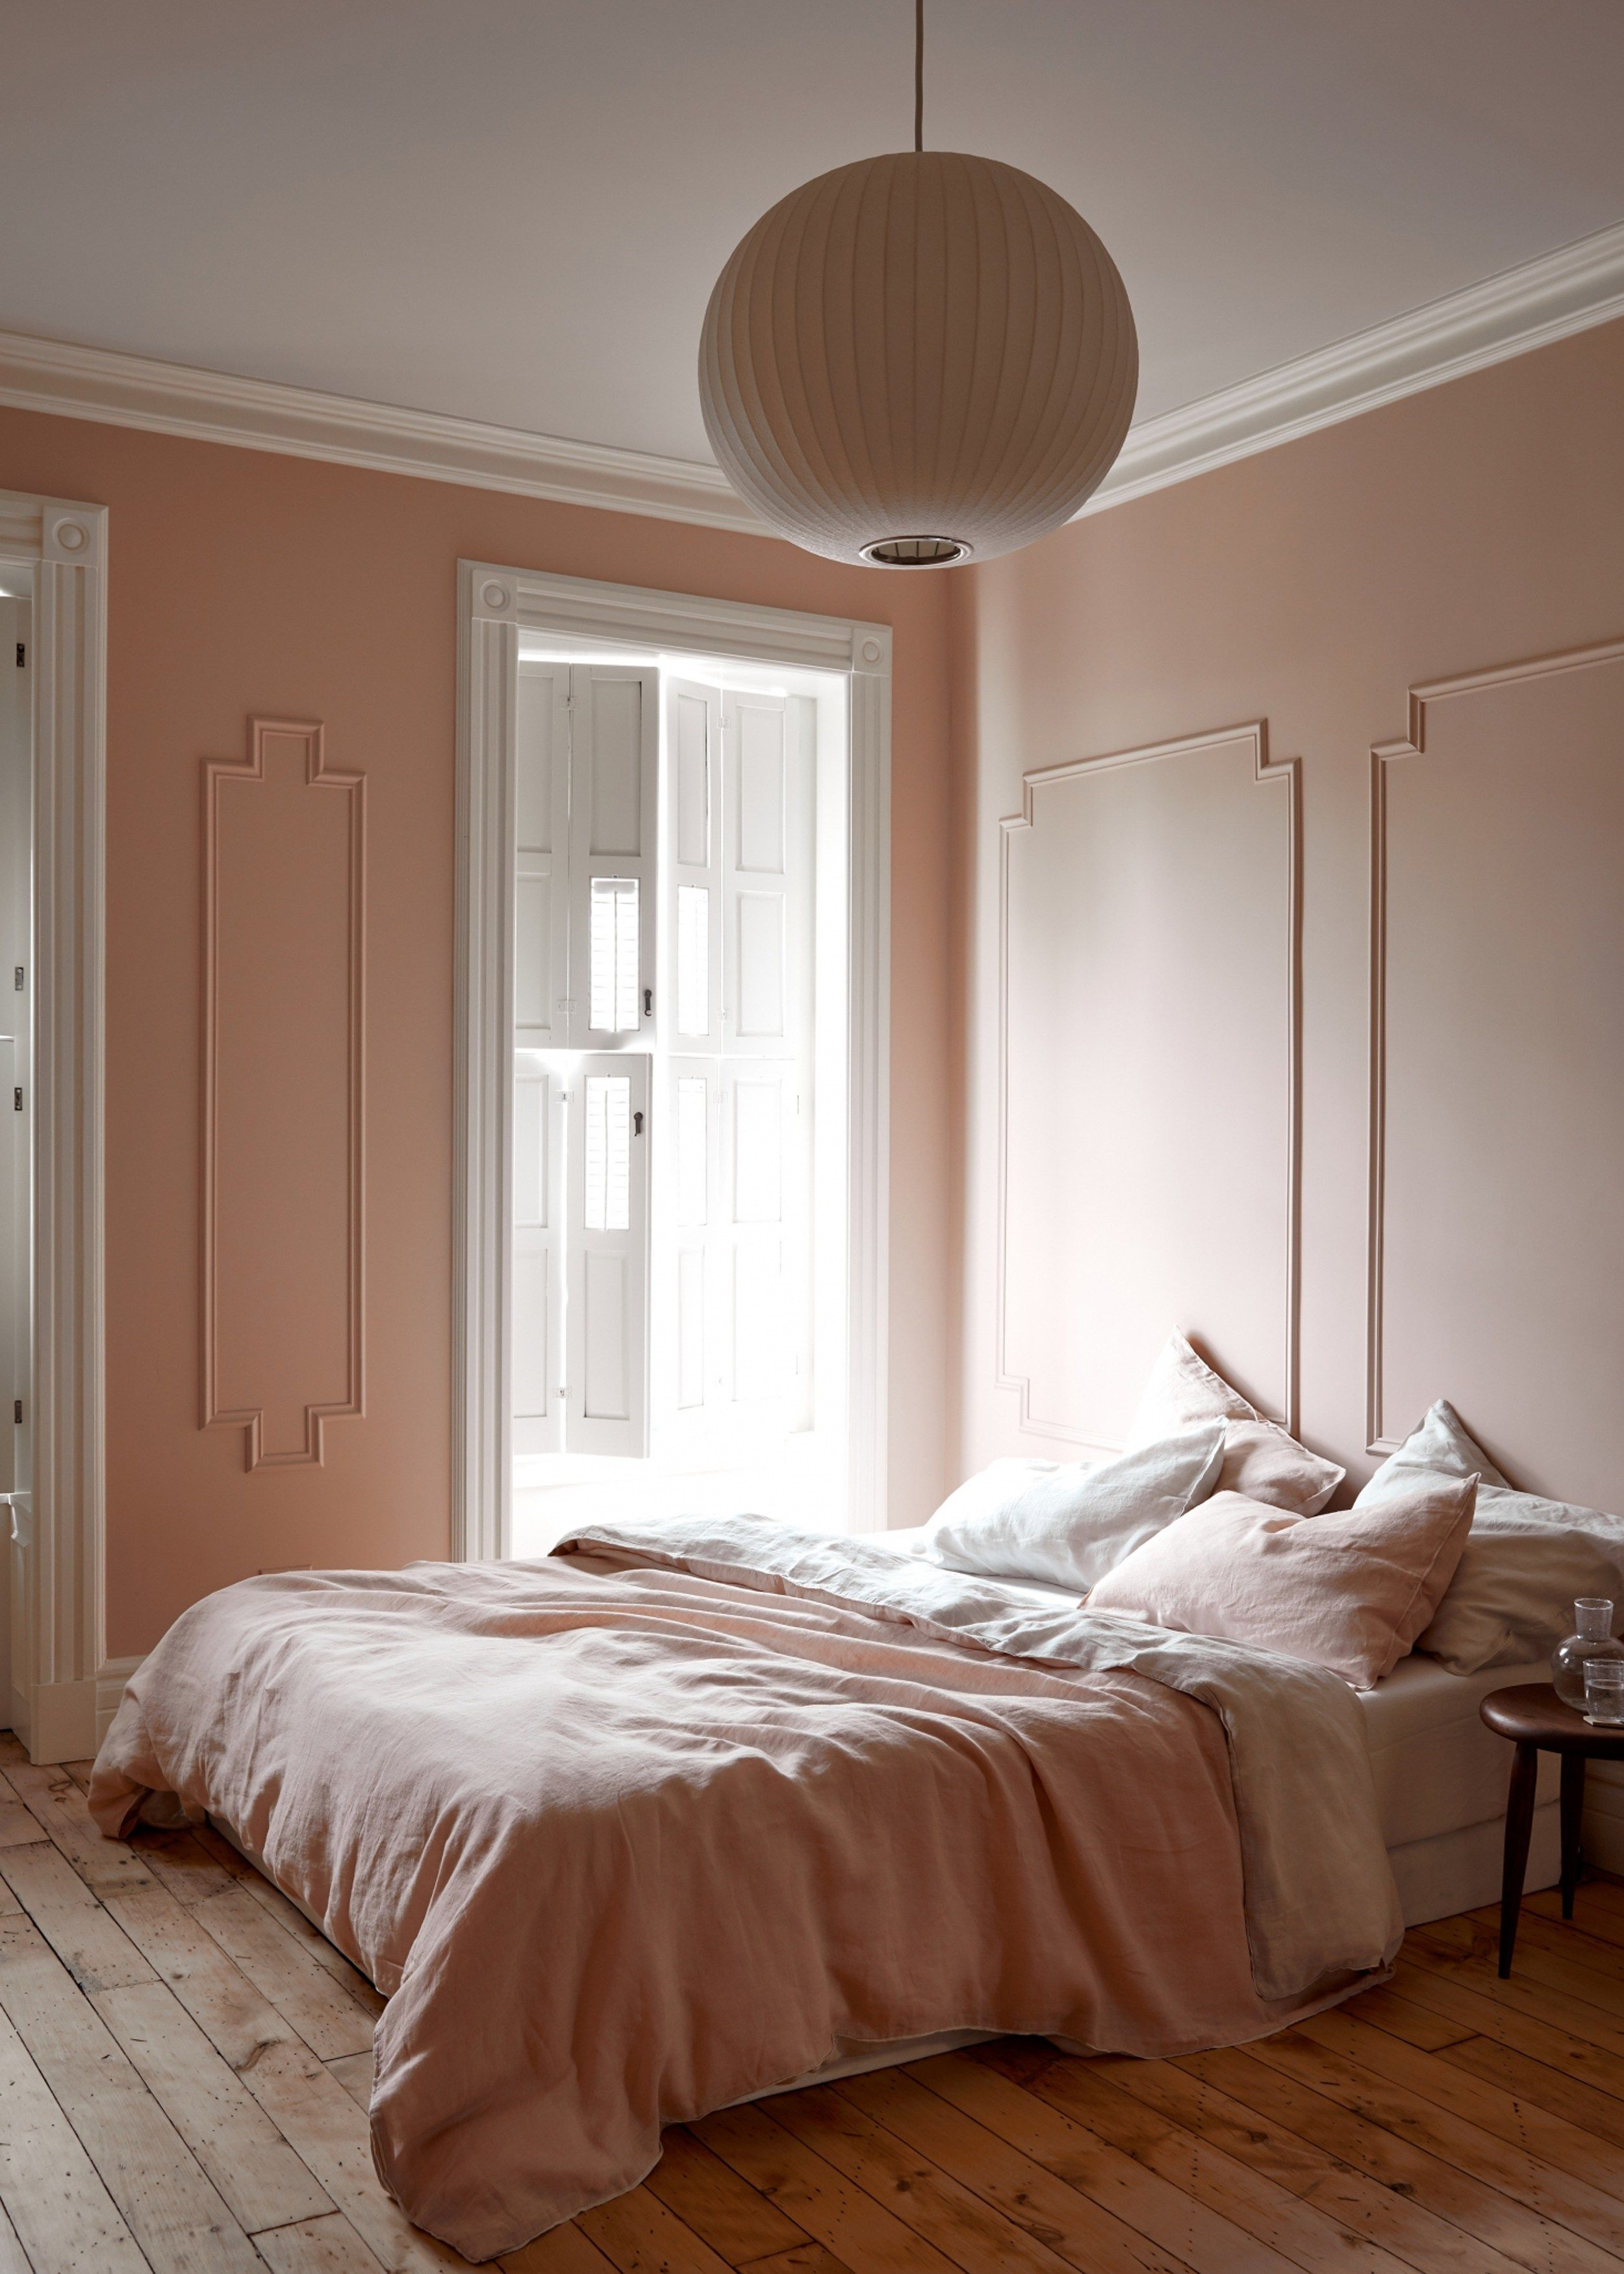 12 Modern Victorian Bedroom Most Of The Exclusive And Grand Too In 2020 With Images Modern Victorian Bedroom Home Decor Bedroom Monochrome Bedroom